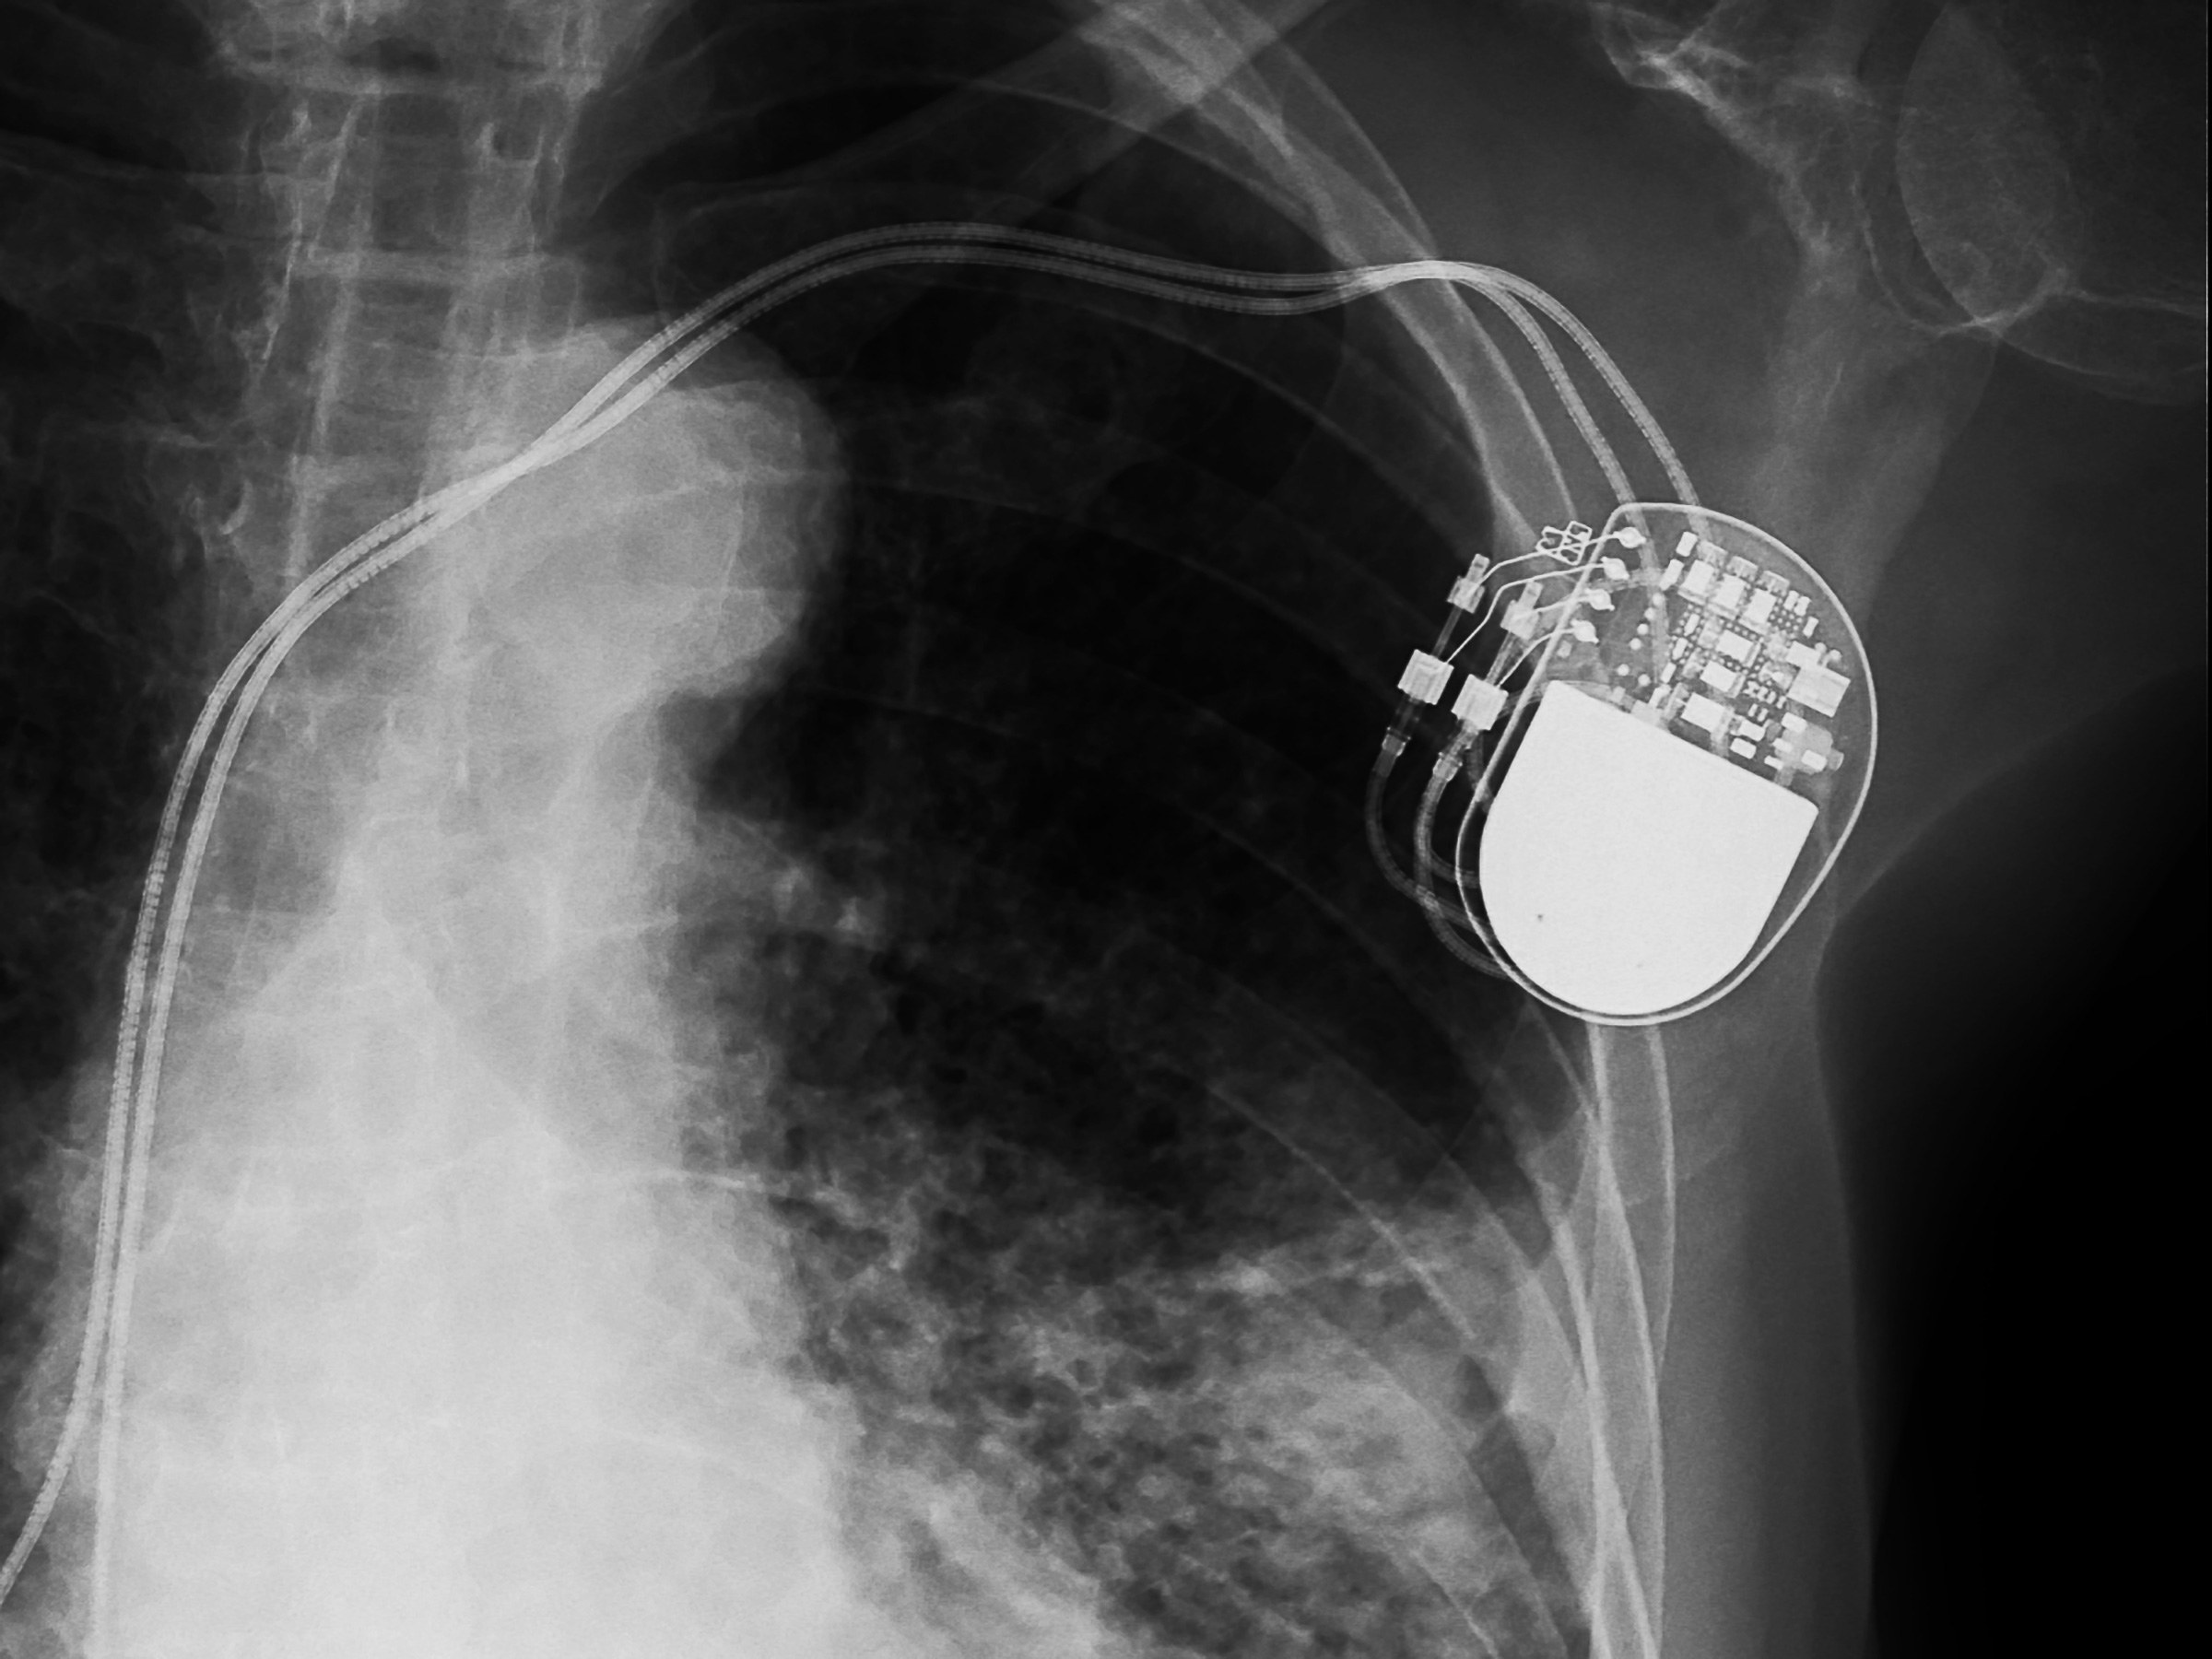 Dr. Levine runs a pacemaker clinic once per month